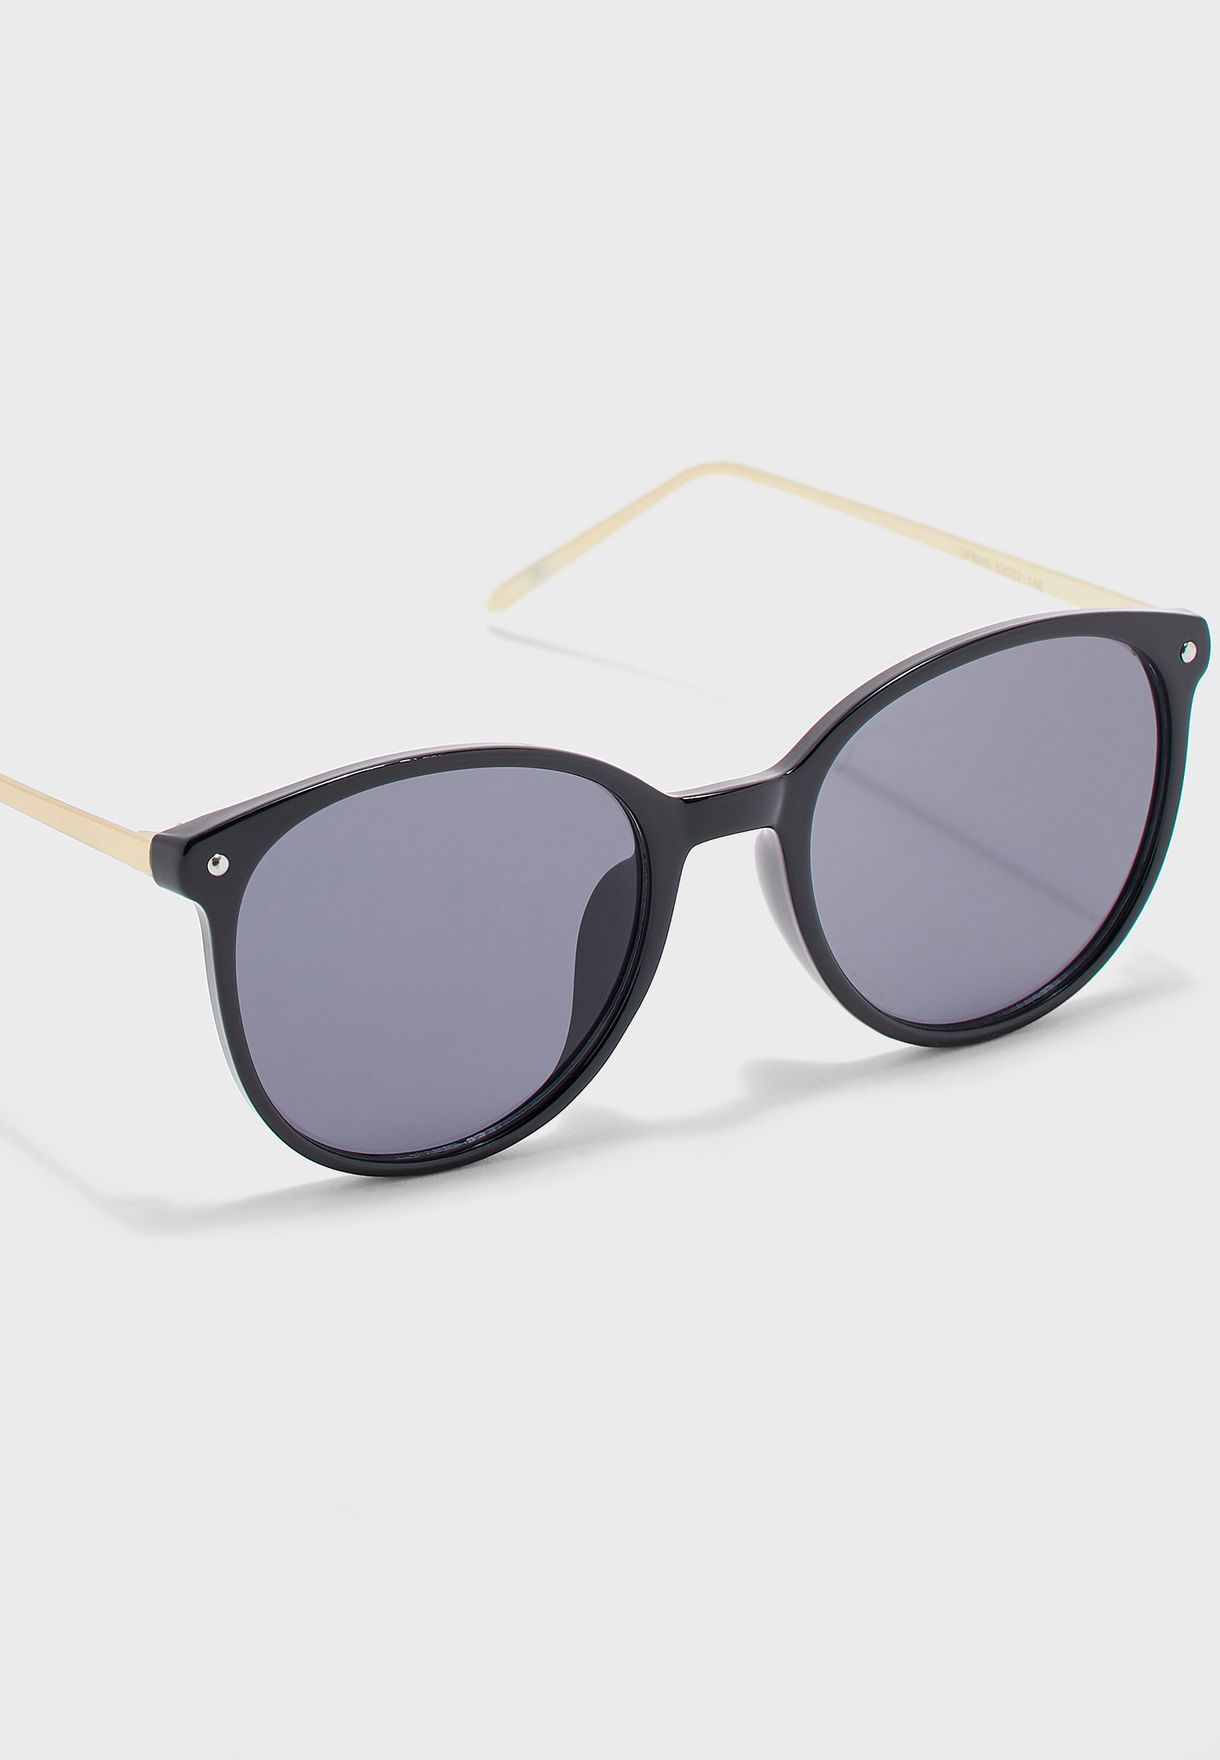 Metal Arm Wayfarer Sunglasses